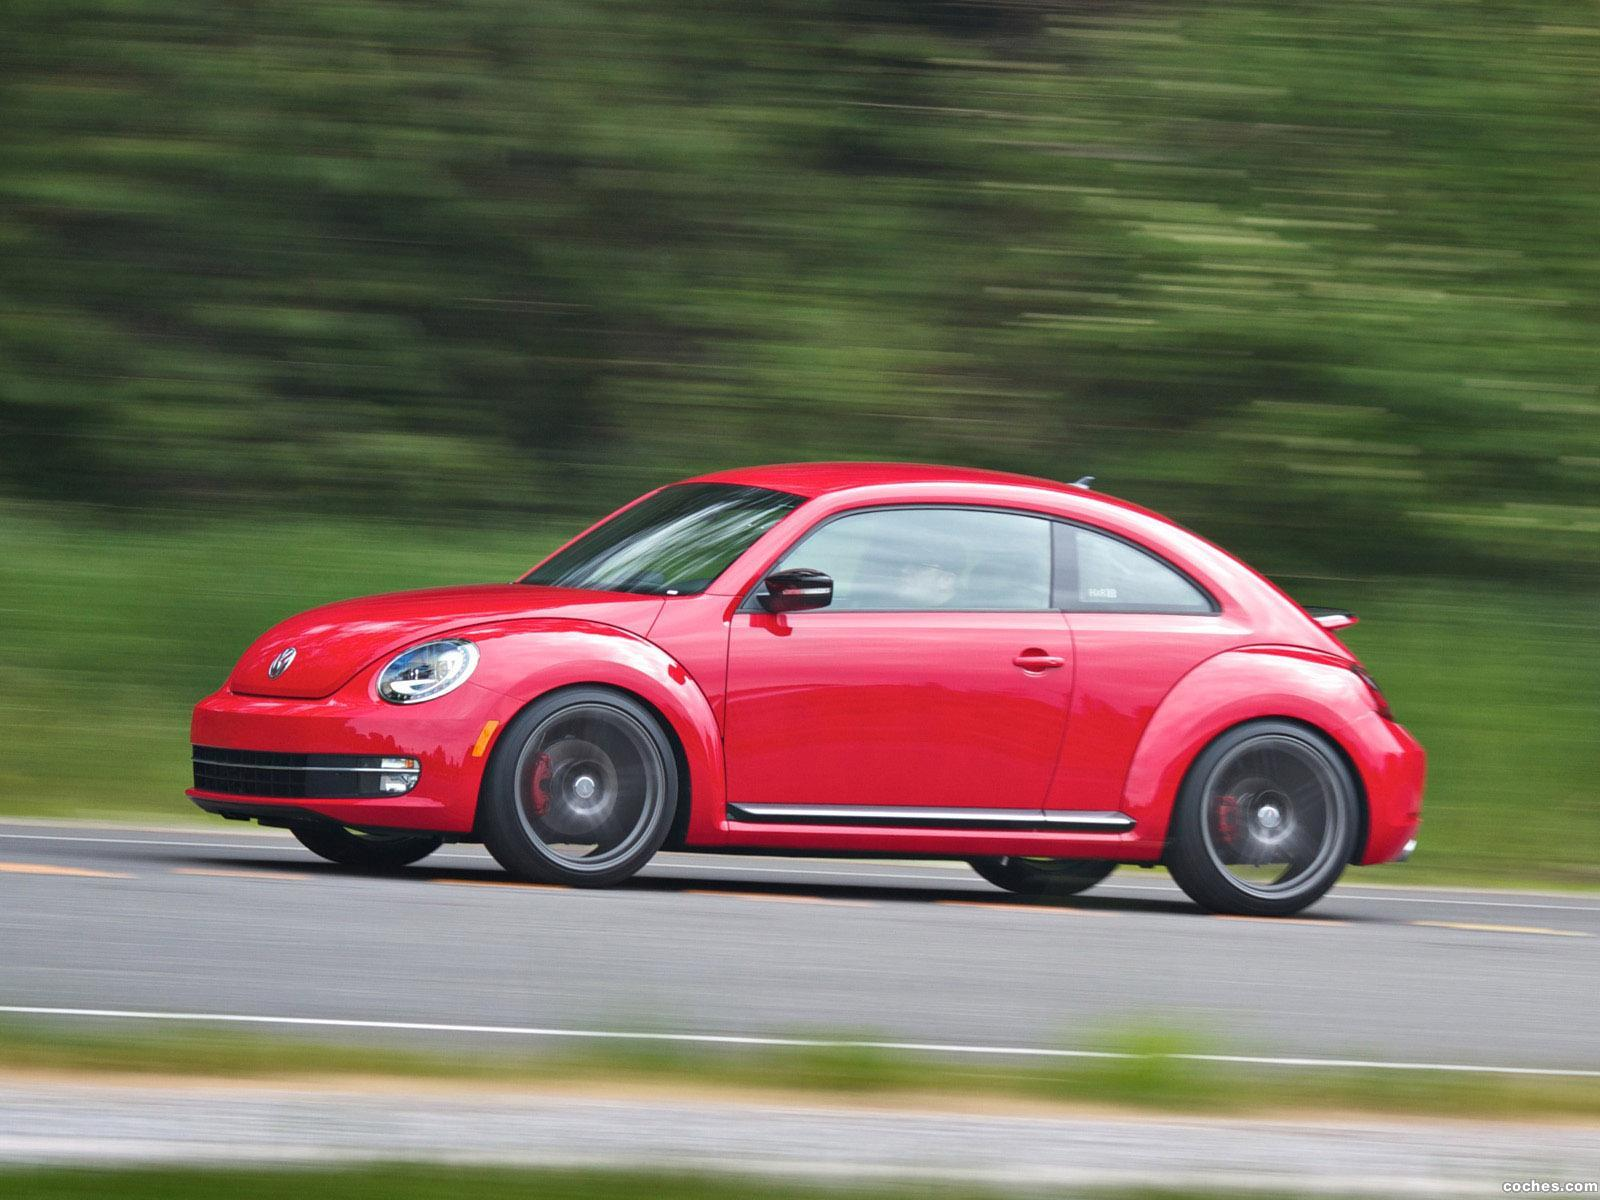 Foto 4 de H&R Volkswagen Beetle Turbo Project 2012